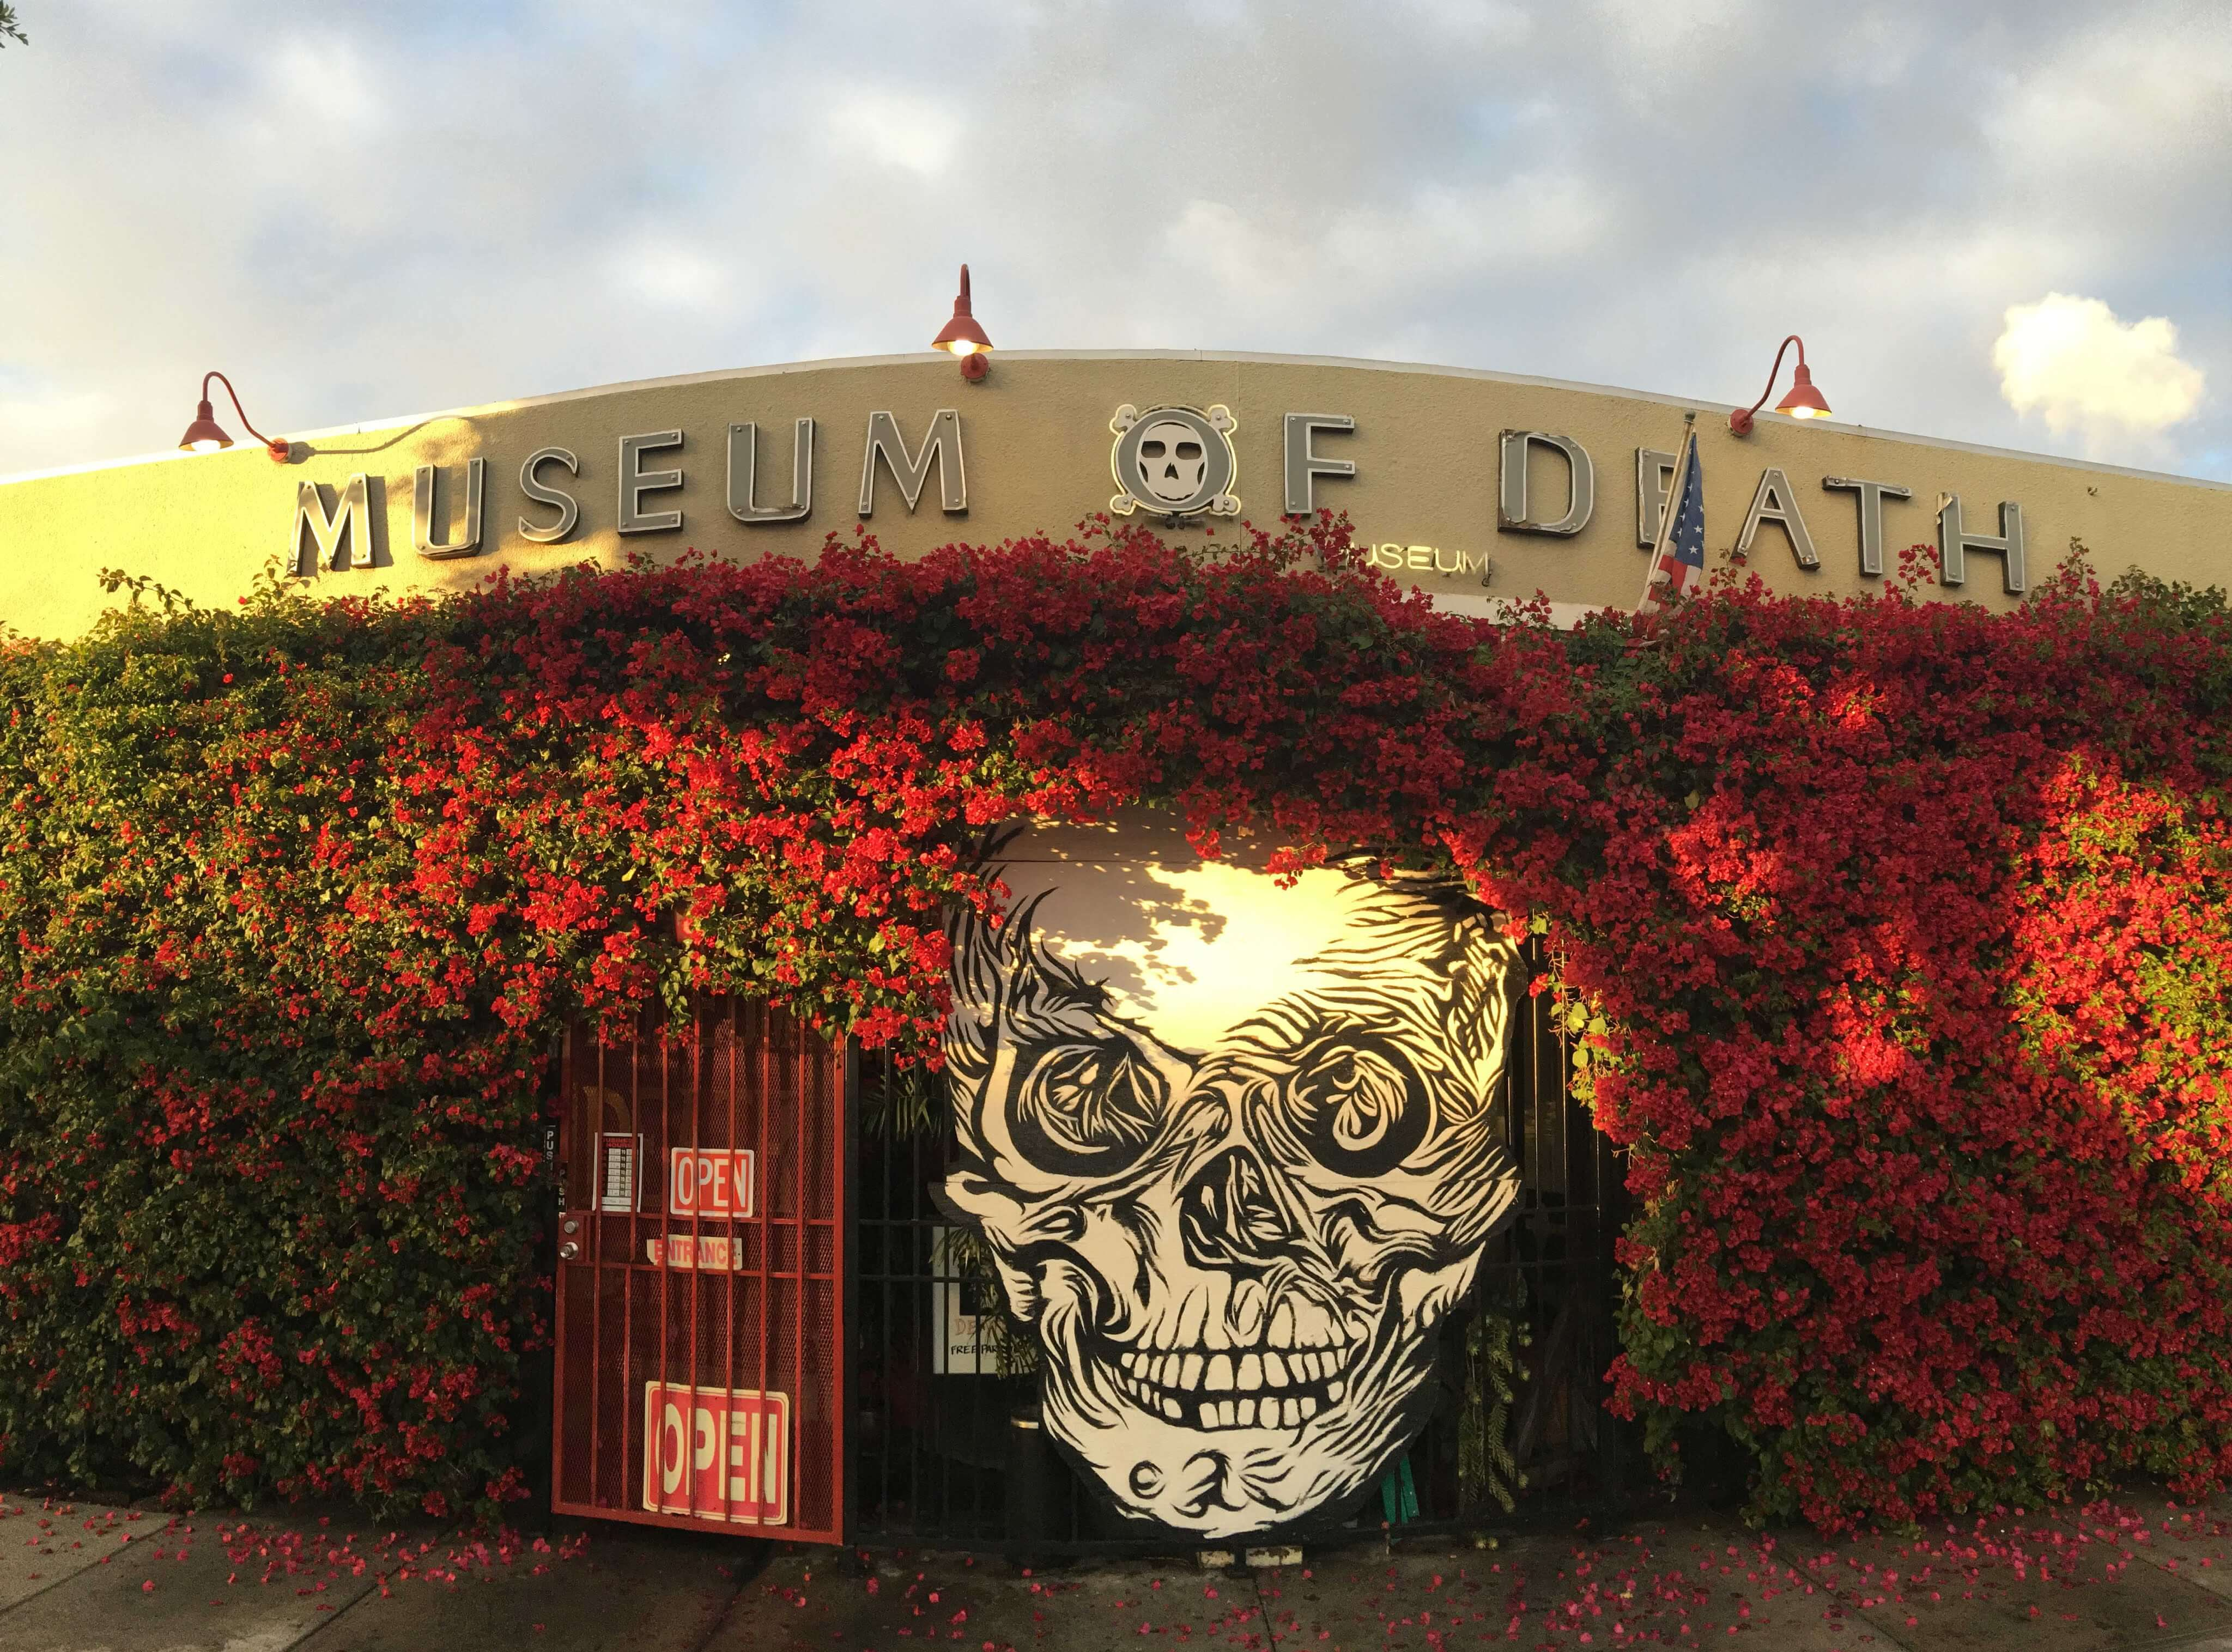 Museum of Death Things to do in New Orleans